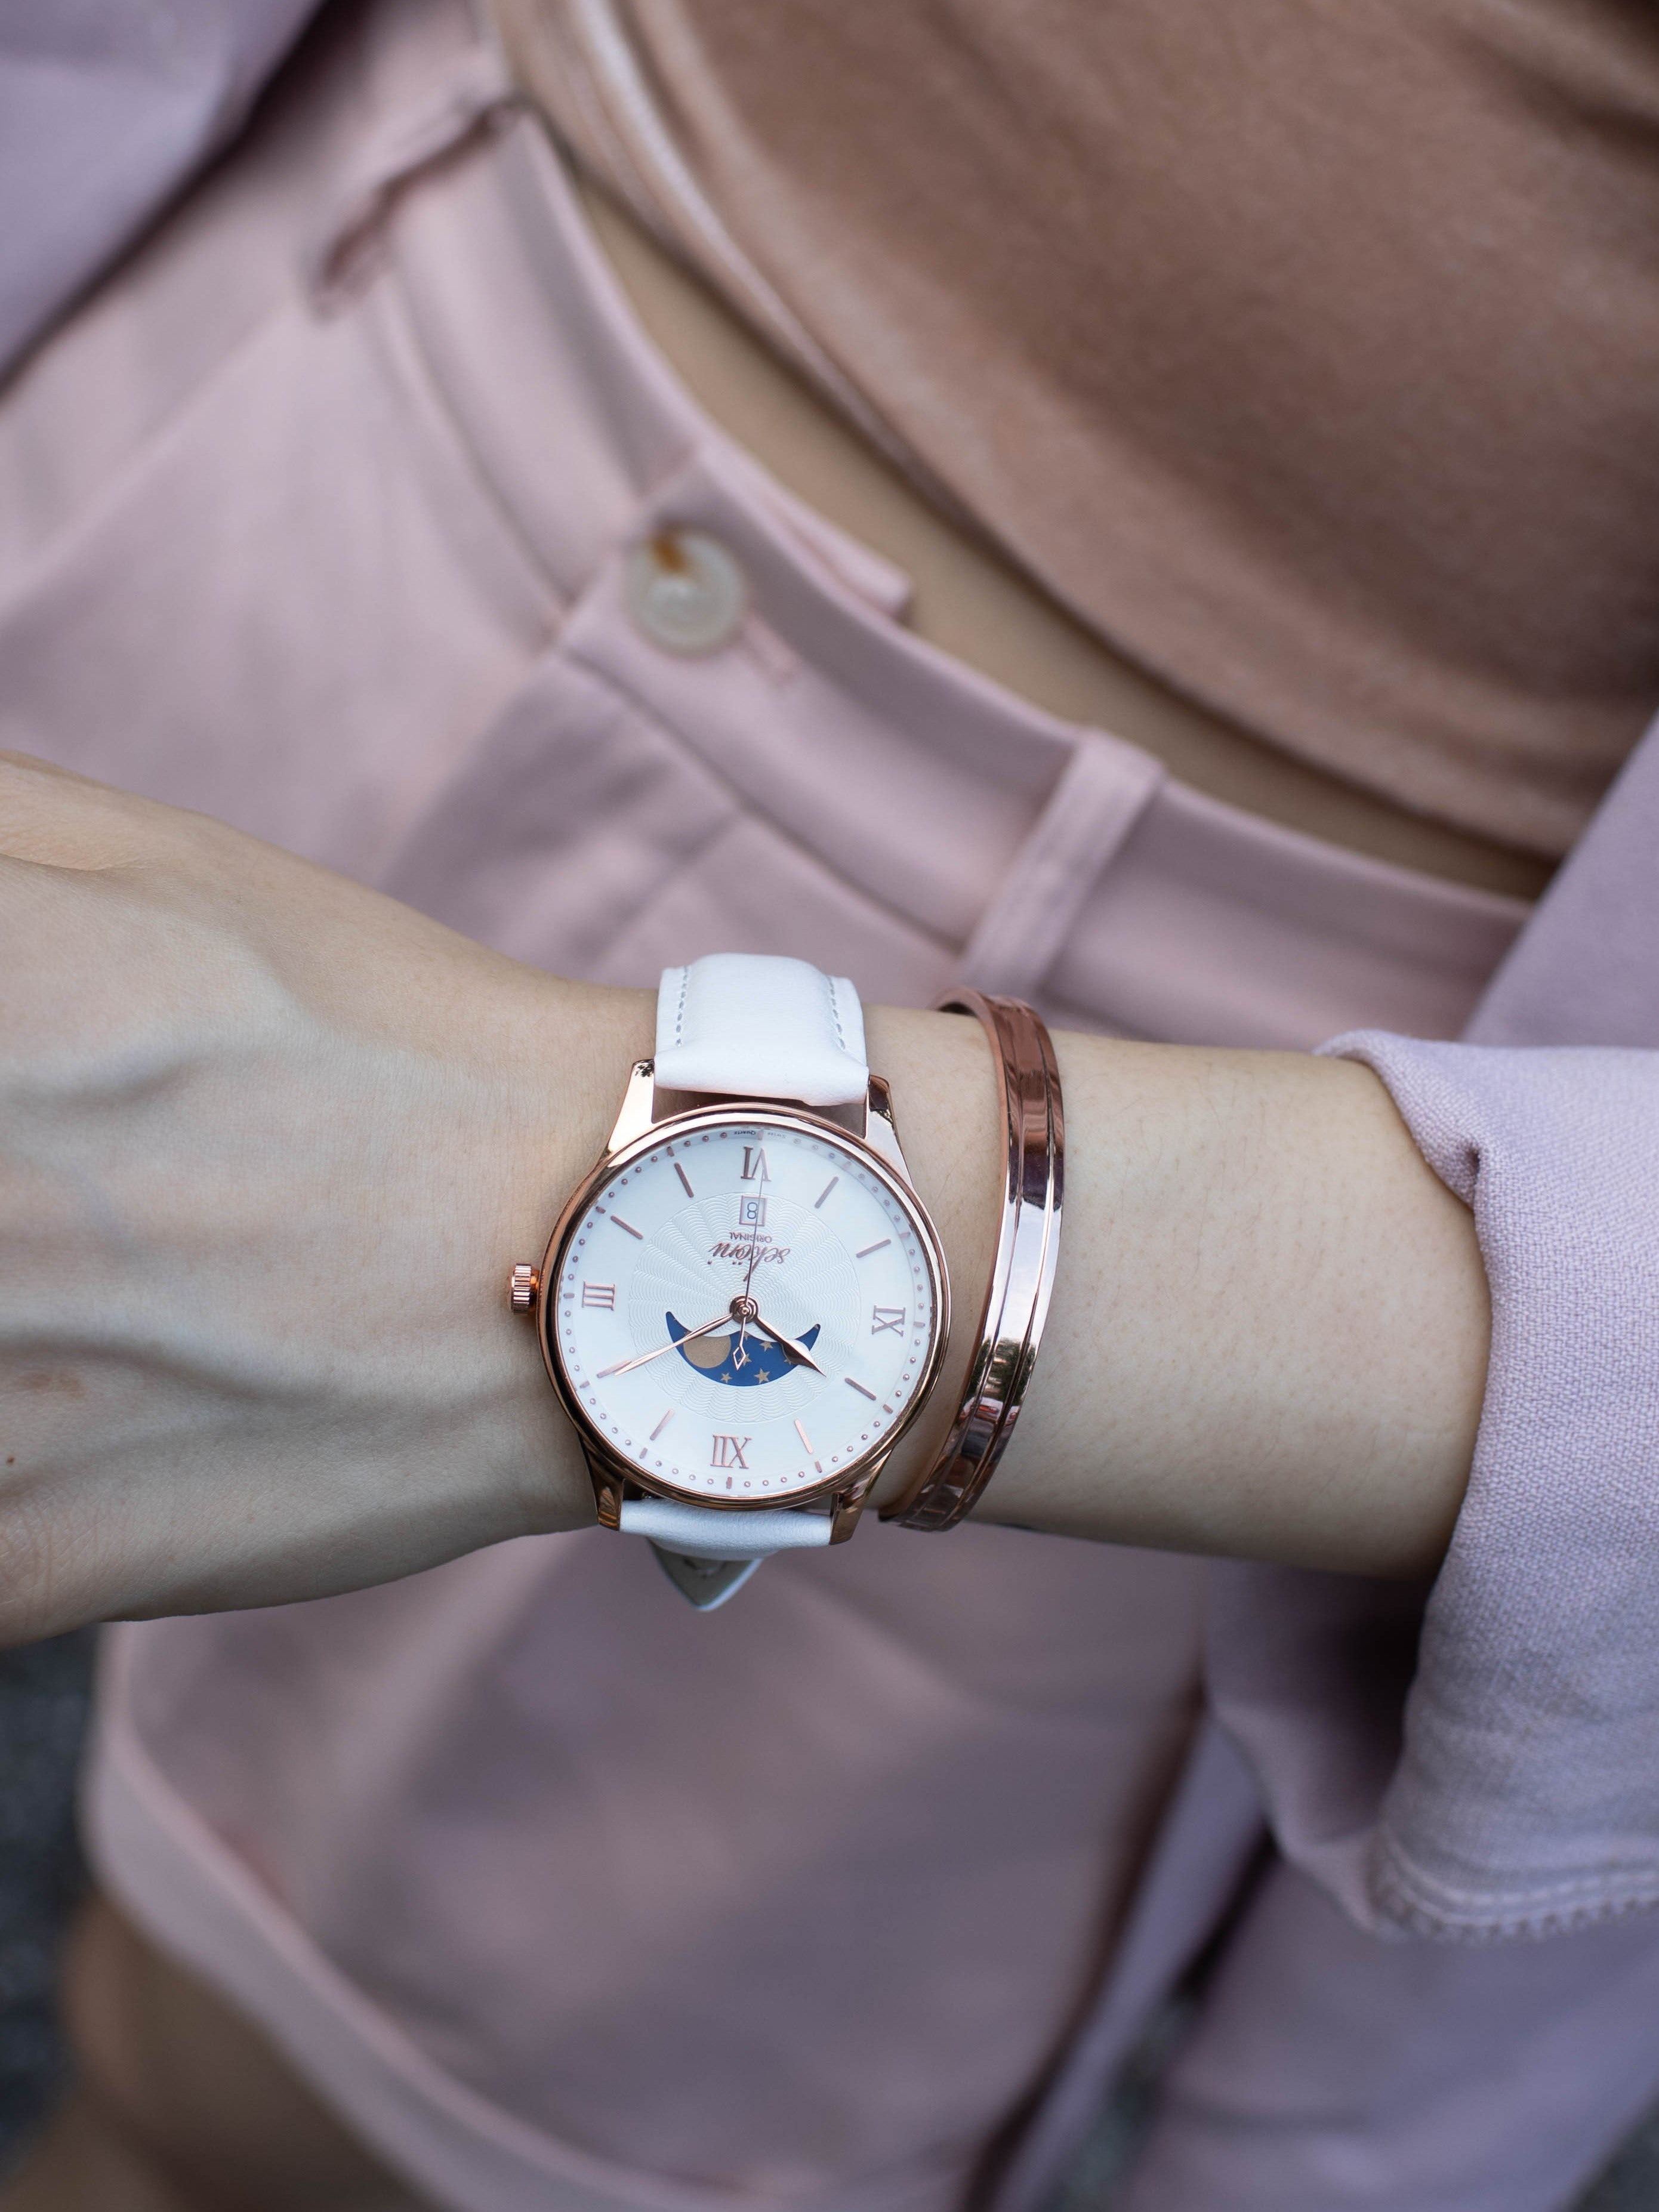 Sekoni 2021 Lookbook for Her - Style Rose Gold Watch